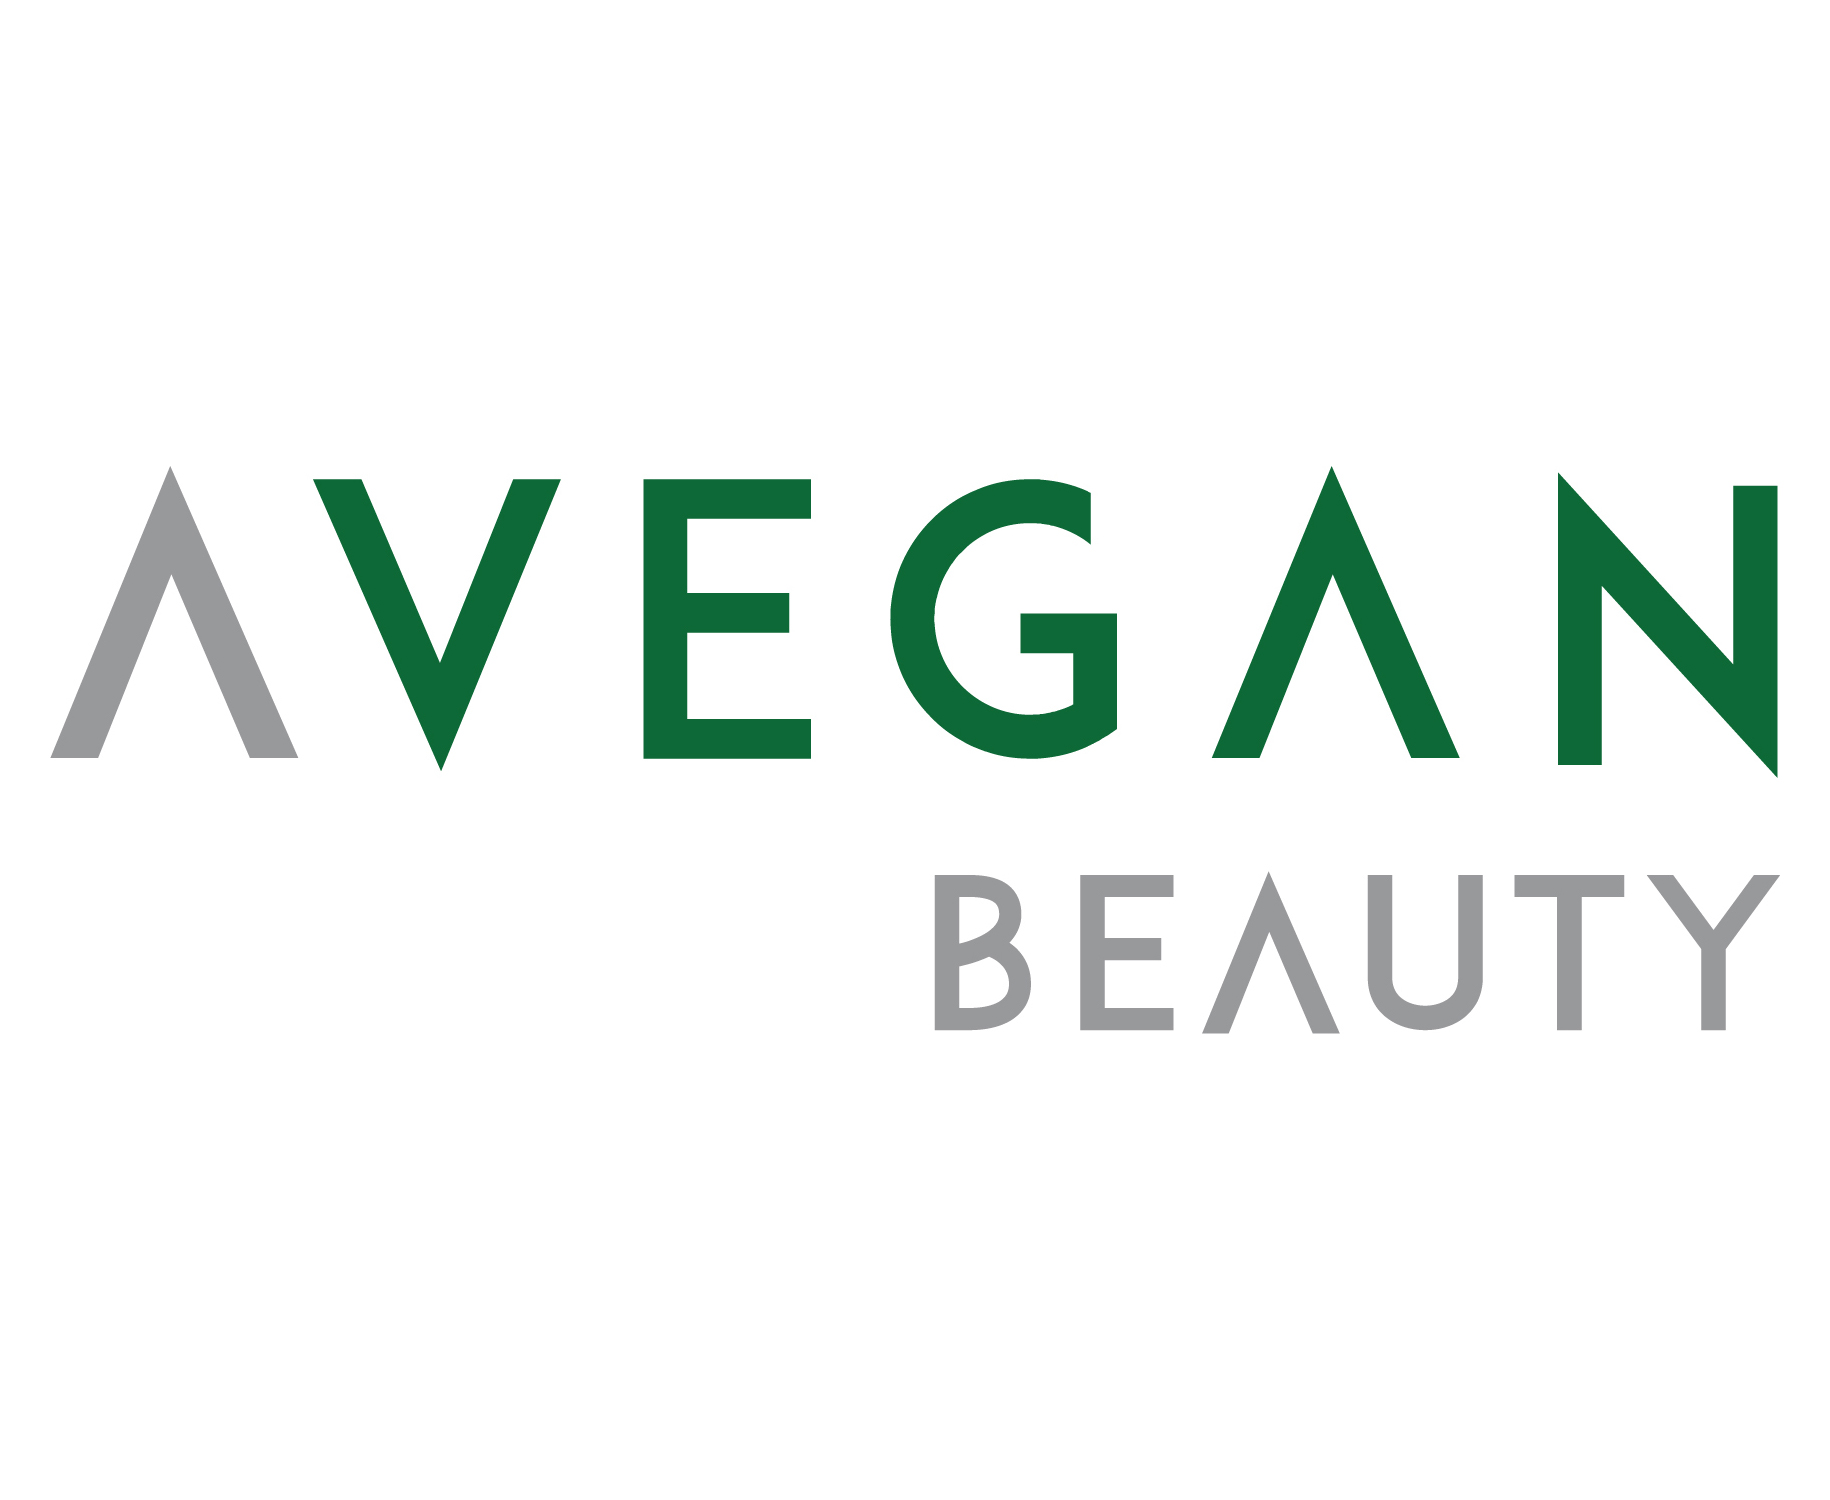 AVEGAN Beauty is the First Business to Sell Shares on the World's First Vegan Crowdfunding Platform